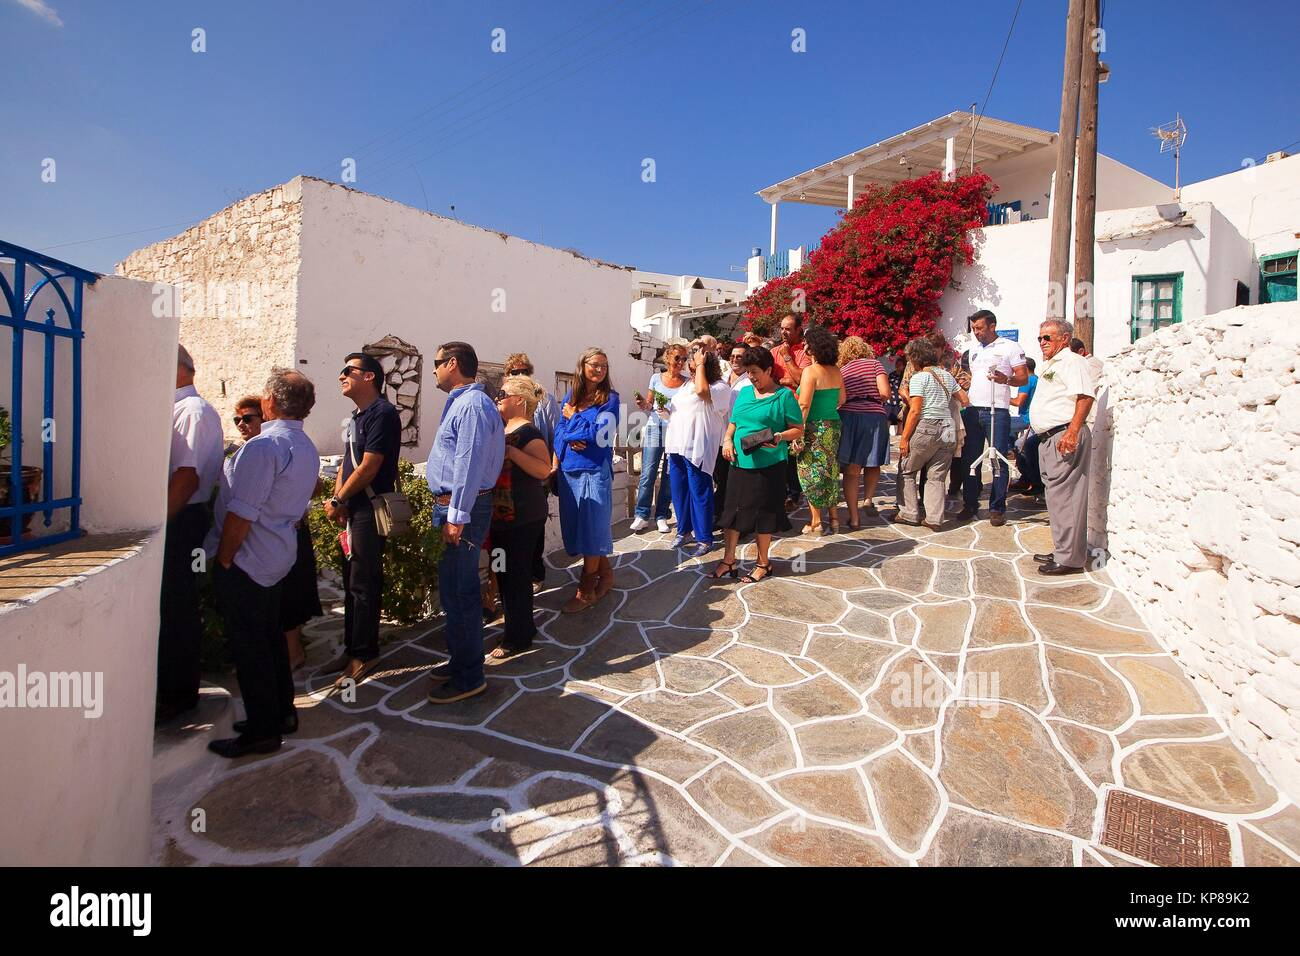 Local people celebrating a traditional festivity at the Kastro-Castle area, Sikinos, Cyclades Islands, Greek Islands, - Stock Image